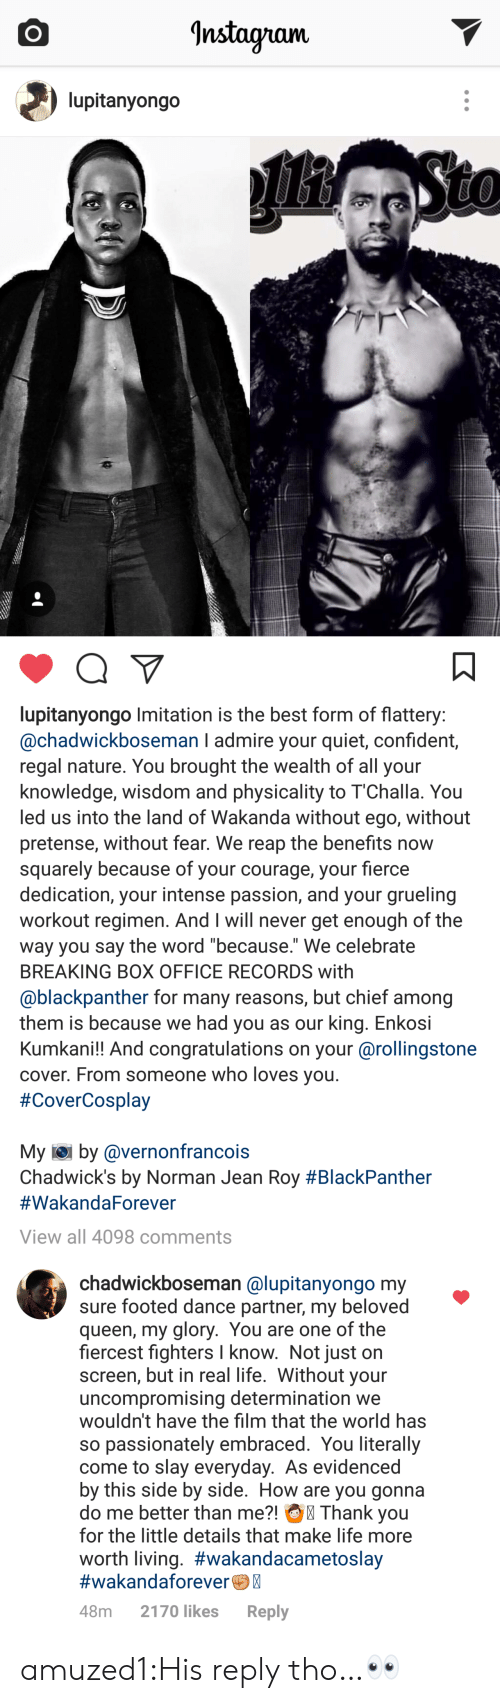 """Life, Tumblr, and Queen: Instayram.  lupitanyongo   lupitanyongo Imitation is the best form of flattery  @chadwickboseman I admire your quiet, confident,  regal nature. You brought the wealth of all your  knowledge, wisdom and physicality to 1""""Challa. You  led us into the land of Wakanda without ego, without  pretense, without fear. We reap the benefits now  squarely because of your courage, your fierce  dedication, your intense passion, and your grueling  workout regimen. And I will never get enough of the  way you say the word because. We celebrate  BREAKING BOX OFFICE RECORDS with  @blackpanther for many reasons, but chief among  them is because we had you as our king. Enkosi  Kumkani!! And congratulations on your @rollingstone  cover. From someone who loves you  #CoverCosplay  My iei by @vernonfrancois  Chadwick's by Norman Jean Roy #BlackPanther  #WakandaForever  View all 4098 comments   chadwickboseman @lupitanyongo my  sure footed dance partner, my beloved  queen, my glory. You are one of the  fiercest fighters I know. Not just on  screen, but in real life. Without your  uncompromising determination we  wouldn't have the film that the world has  so passionately embraced. You literally  come to slay everyday. As evidenced  by this side by side. How are you gonna  do me better than me?! Thank you  for the little details that make life more  worth living. #wakandacametoslay  #wakandaforeverC  48m 2170 likes Reply amuzed1:His reply tho…👀"""